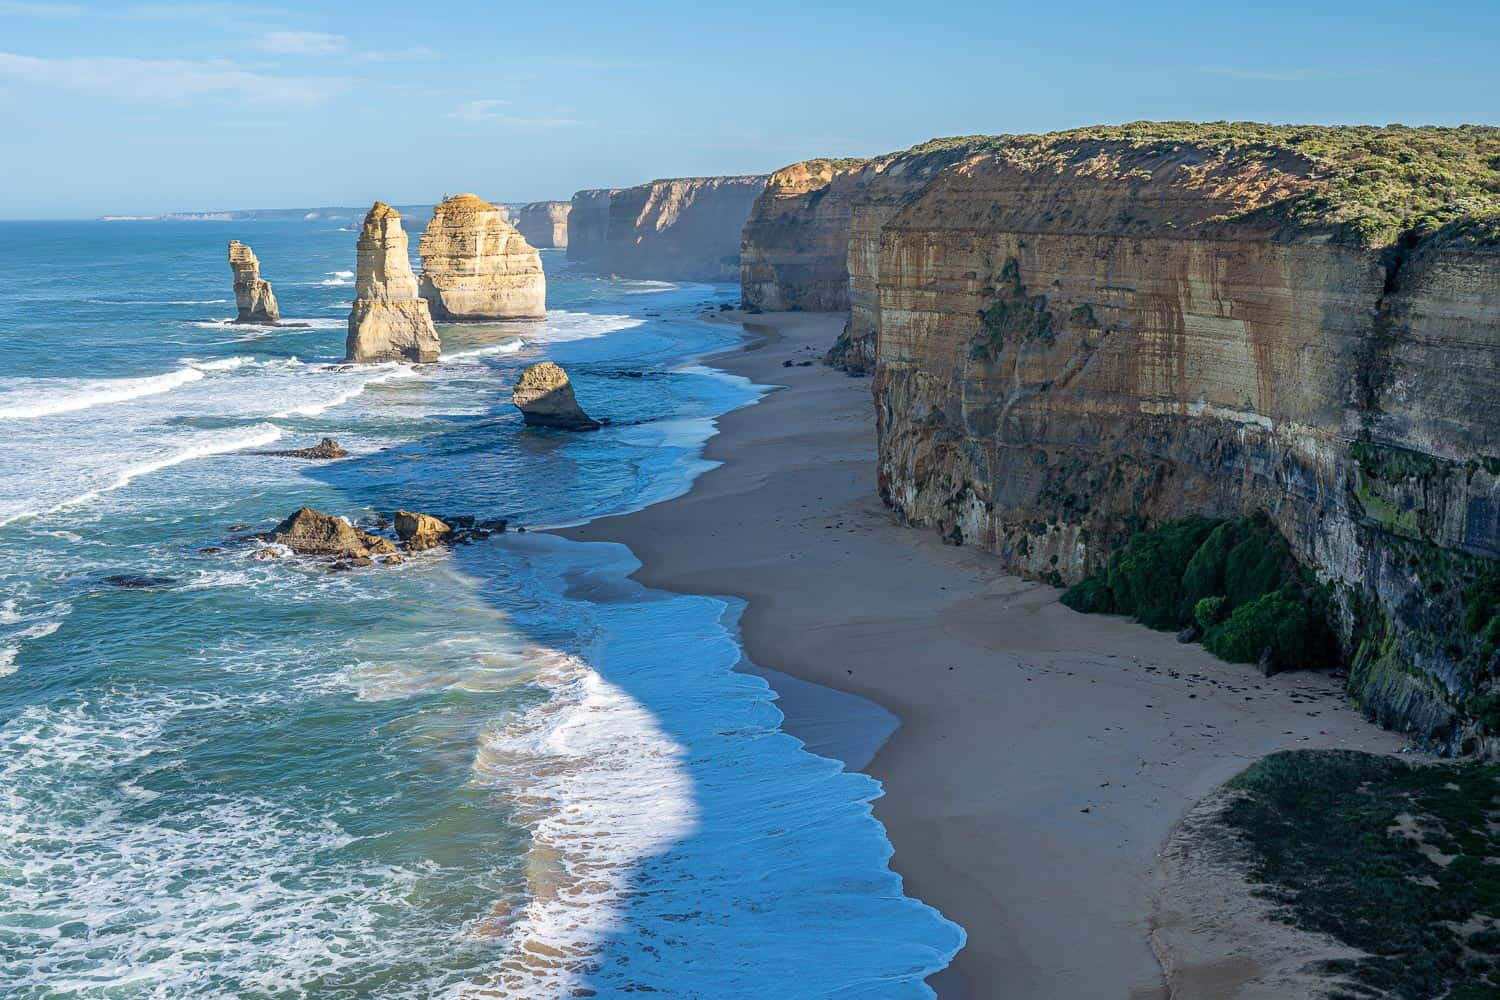 The 12 Apostles rock stacks are the most iconic sight on this Great Ocean Road itinerary from Melbourne, Australia